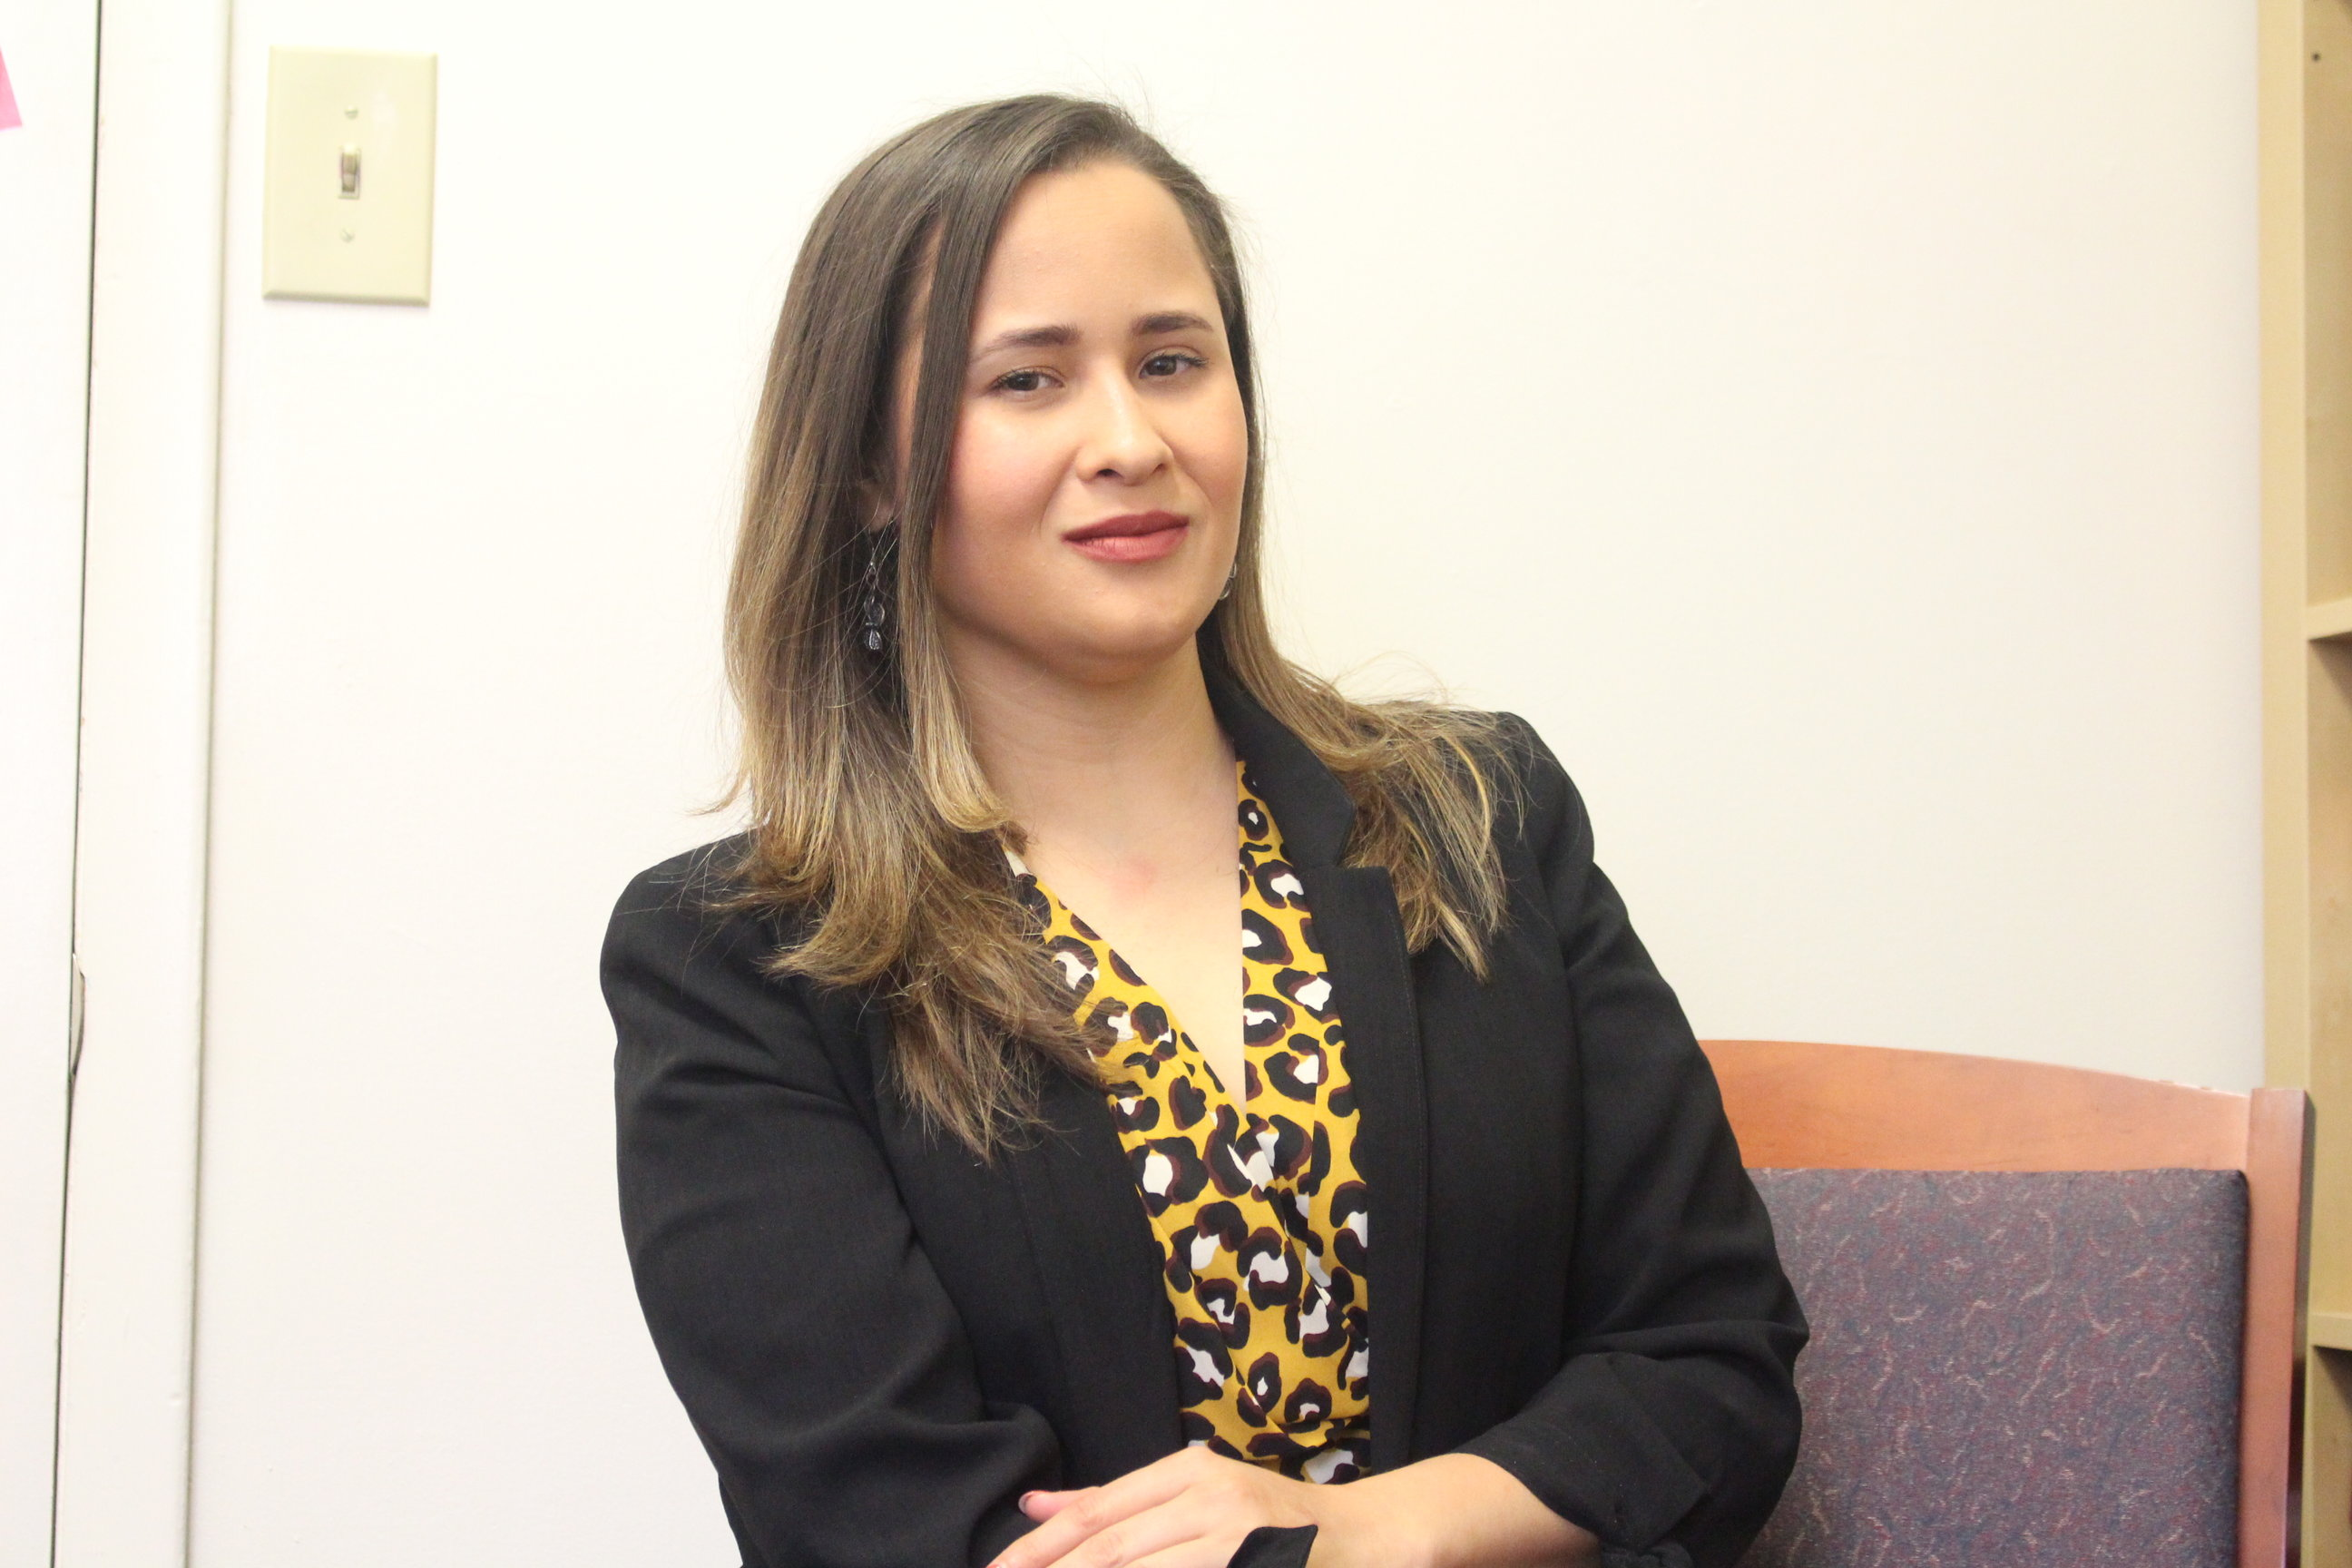 Siria Rivera has worked at a number of nonprofit and grassroots organizations, which led her to her current role. Photo: Jensen Toussaint/AL DÍA News.